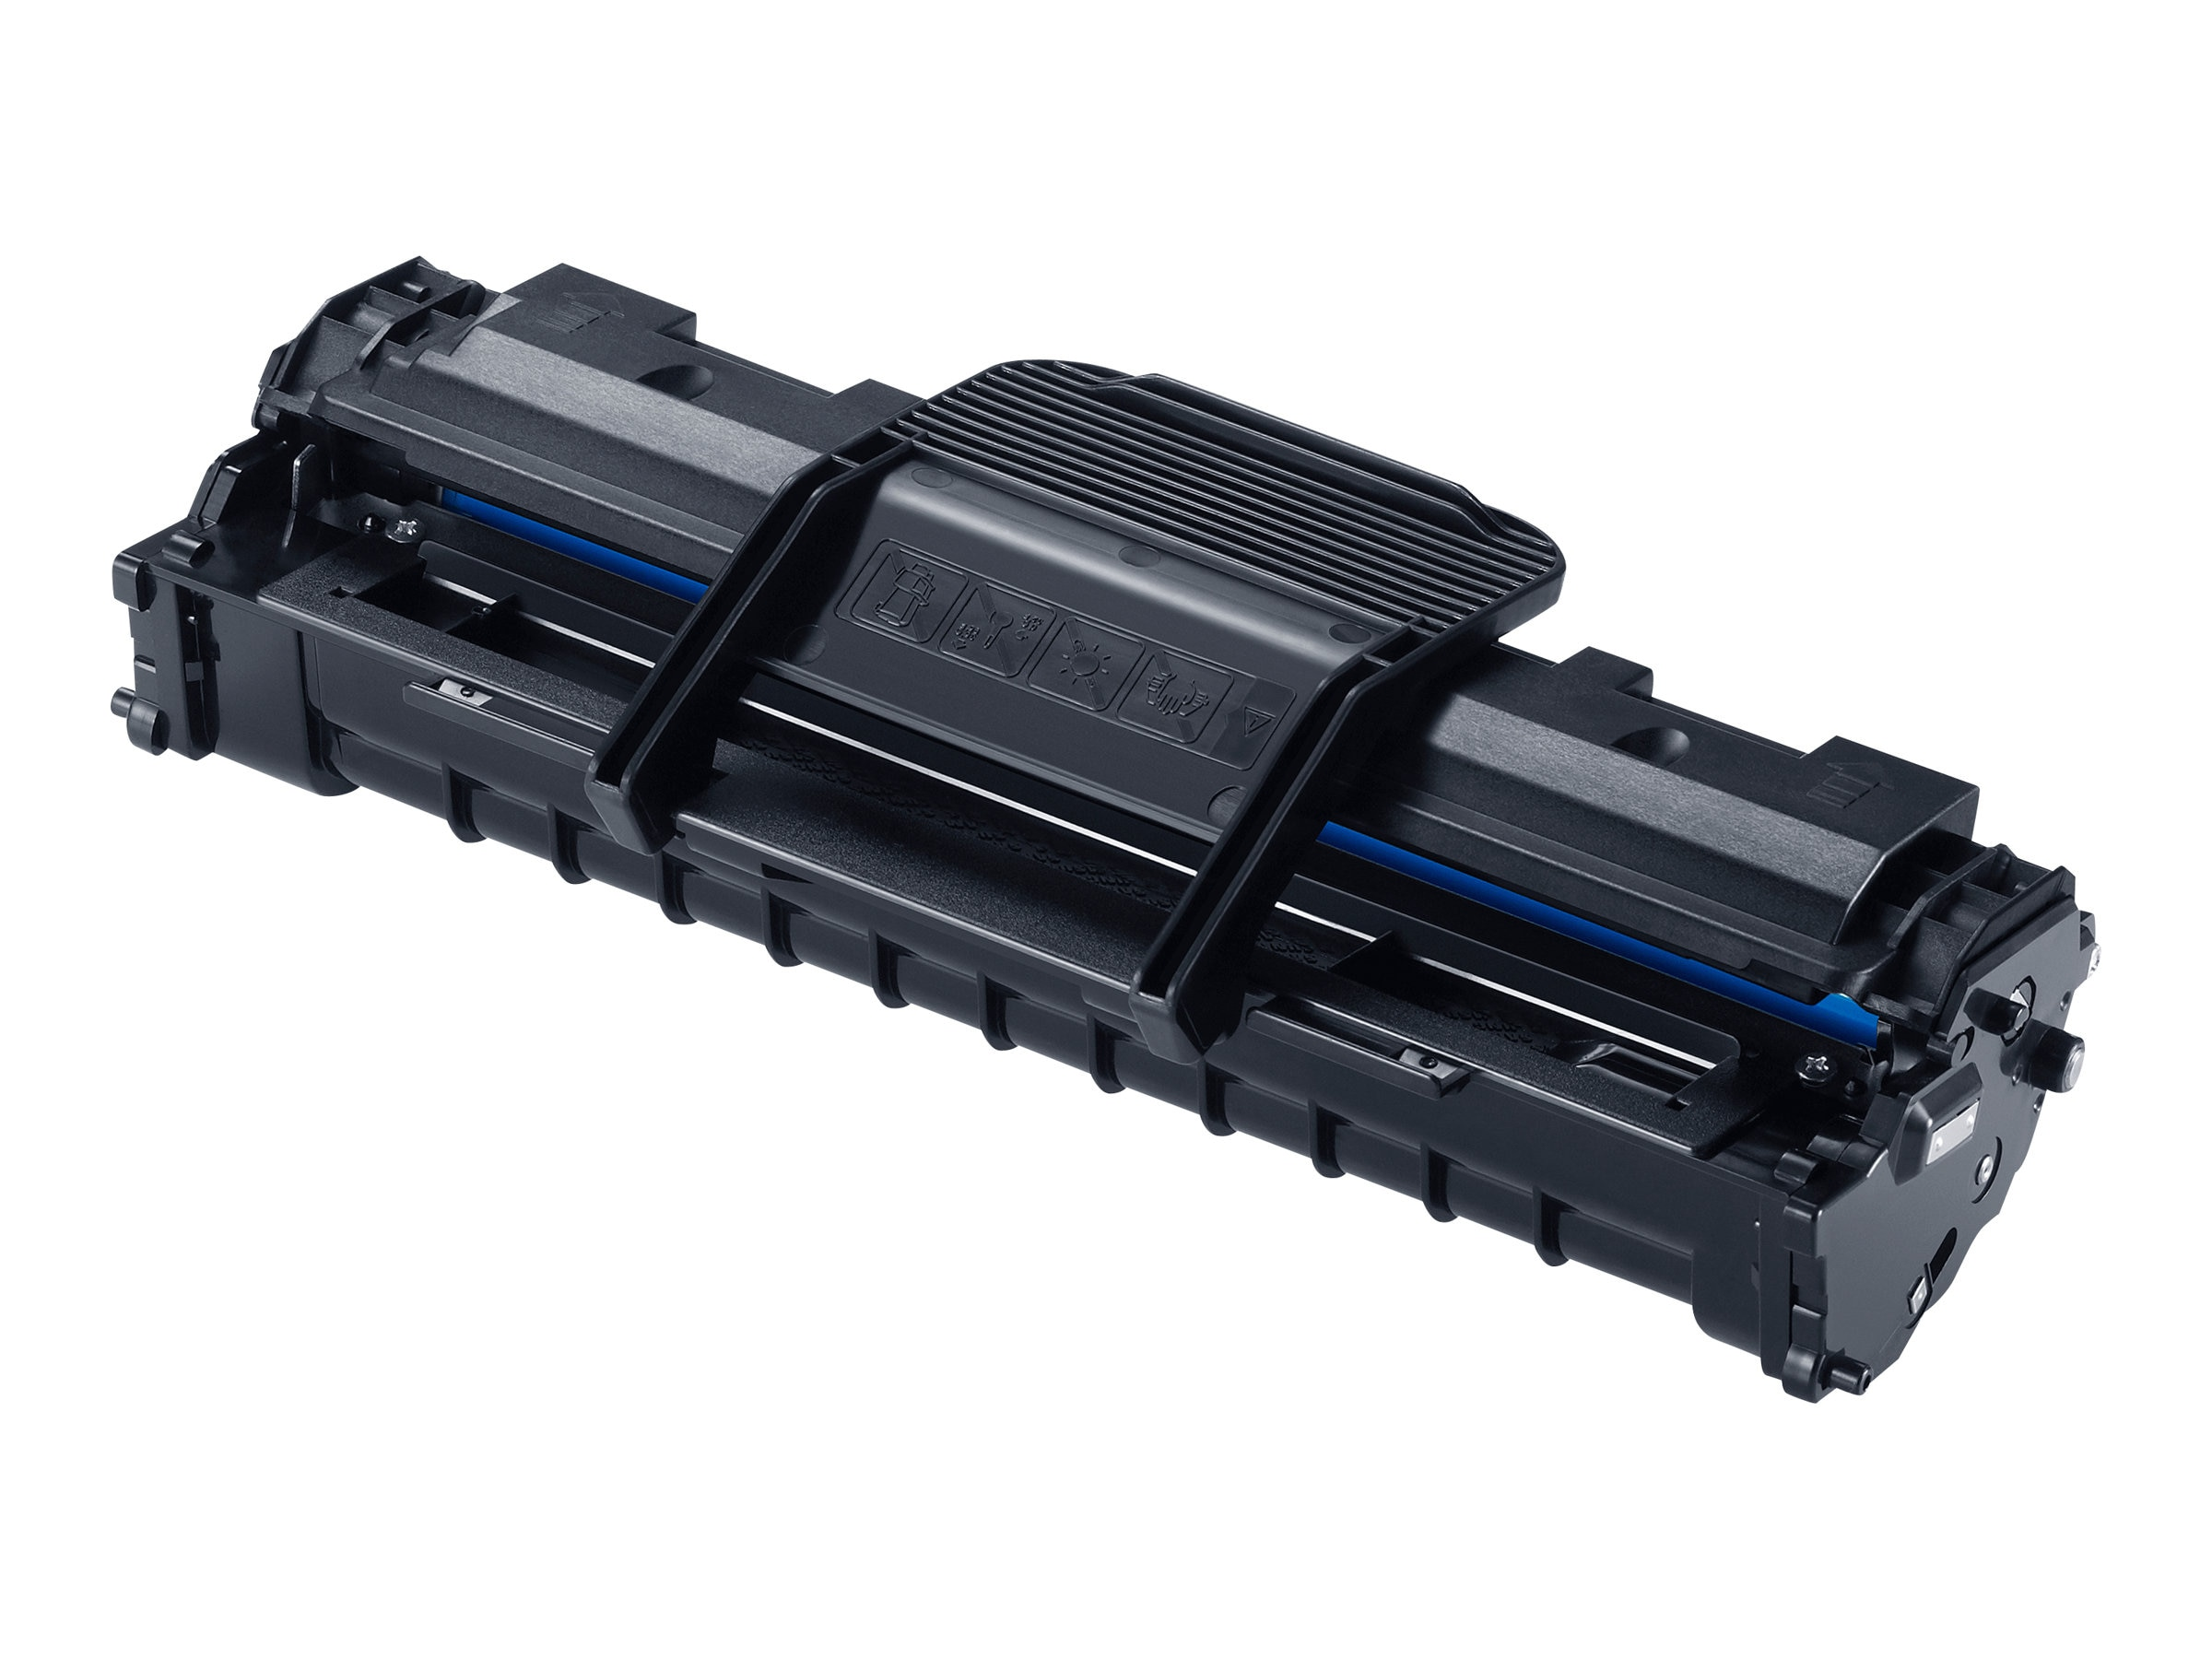 Samsung Black Toner Cartridge for ML-1610, ML-1615, ML-1620, ML-1625, ML-2010, ML-2015, ML-2020, ML-2510, MLT-D119S, 15597111, Toner and Imaging Components